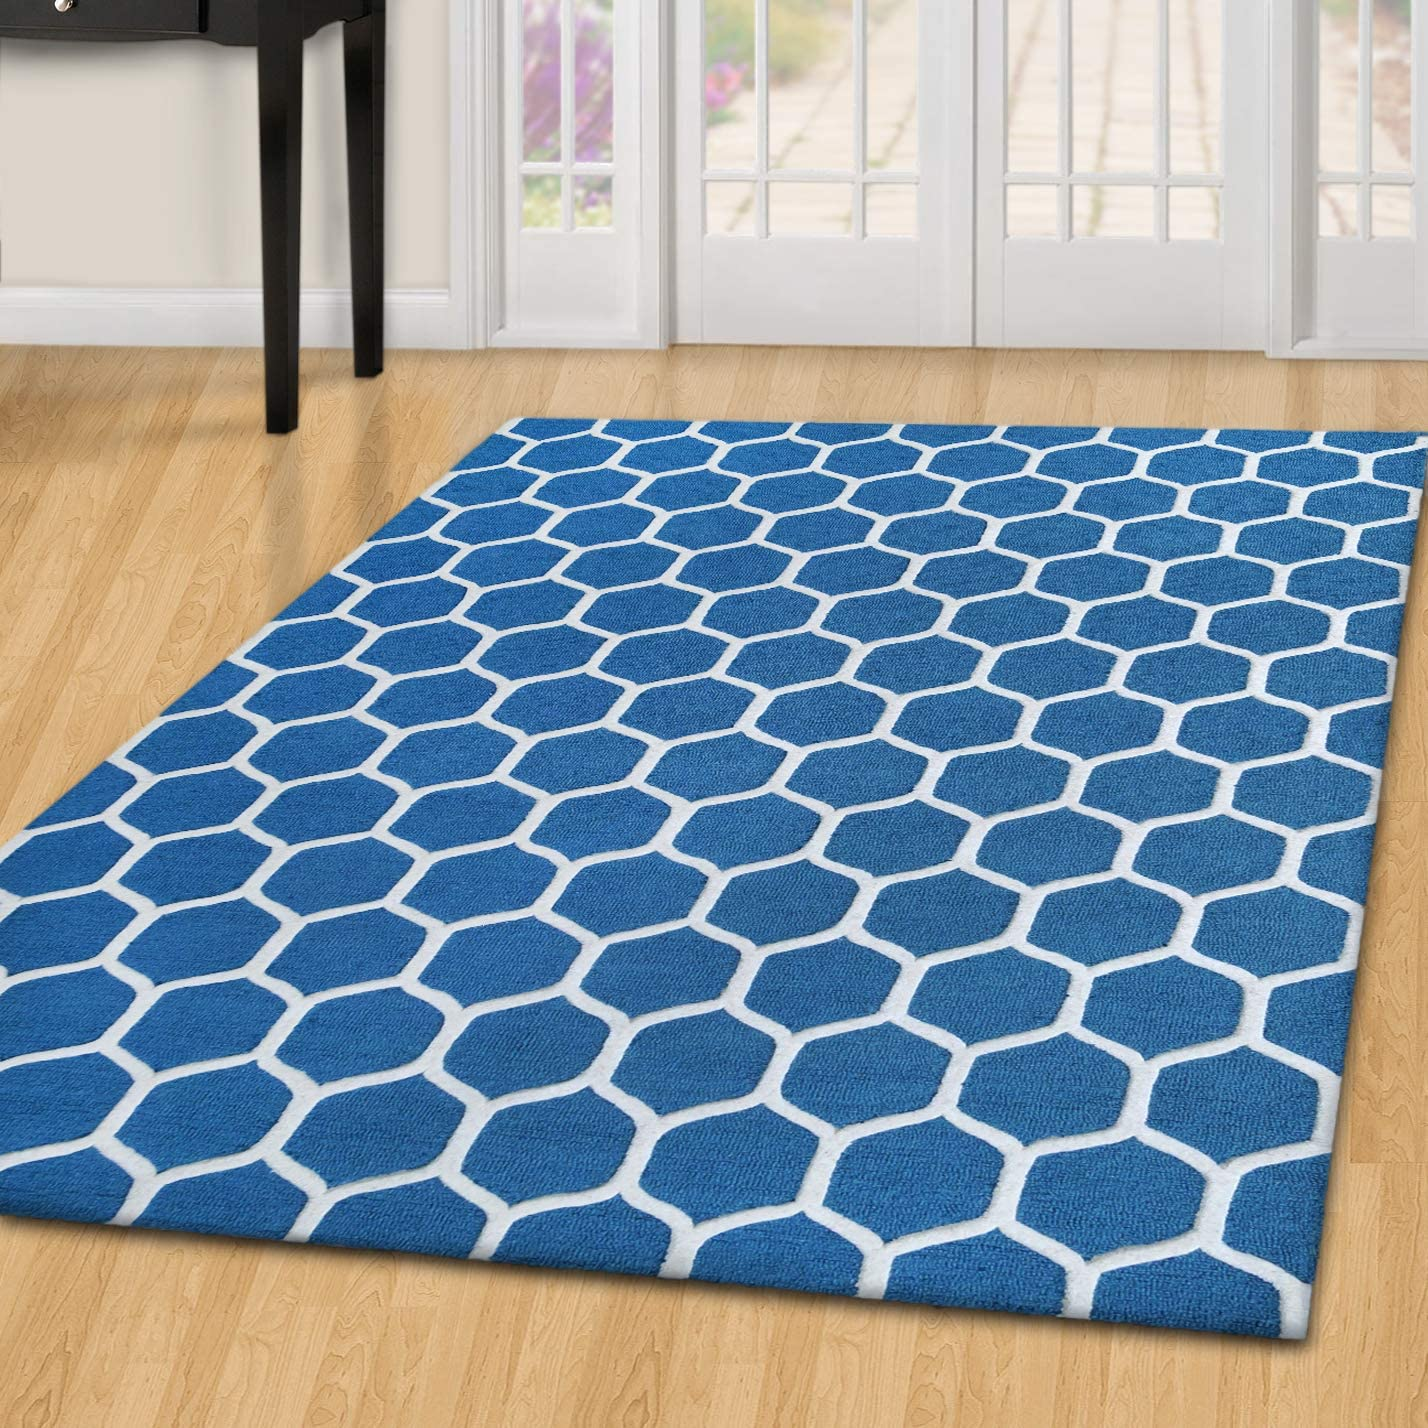 SUPERIOR 5' x 8' Honey Comb Hand-Tufed Wool Teal/Ivory Area Rug